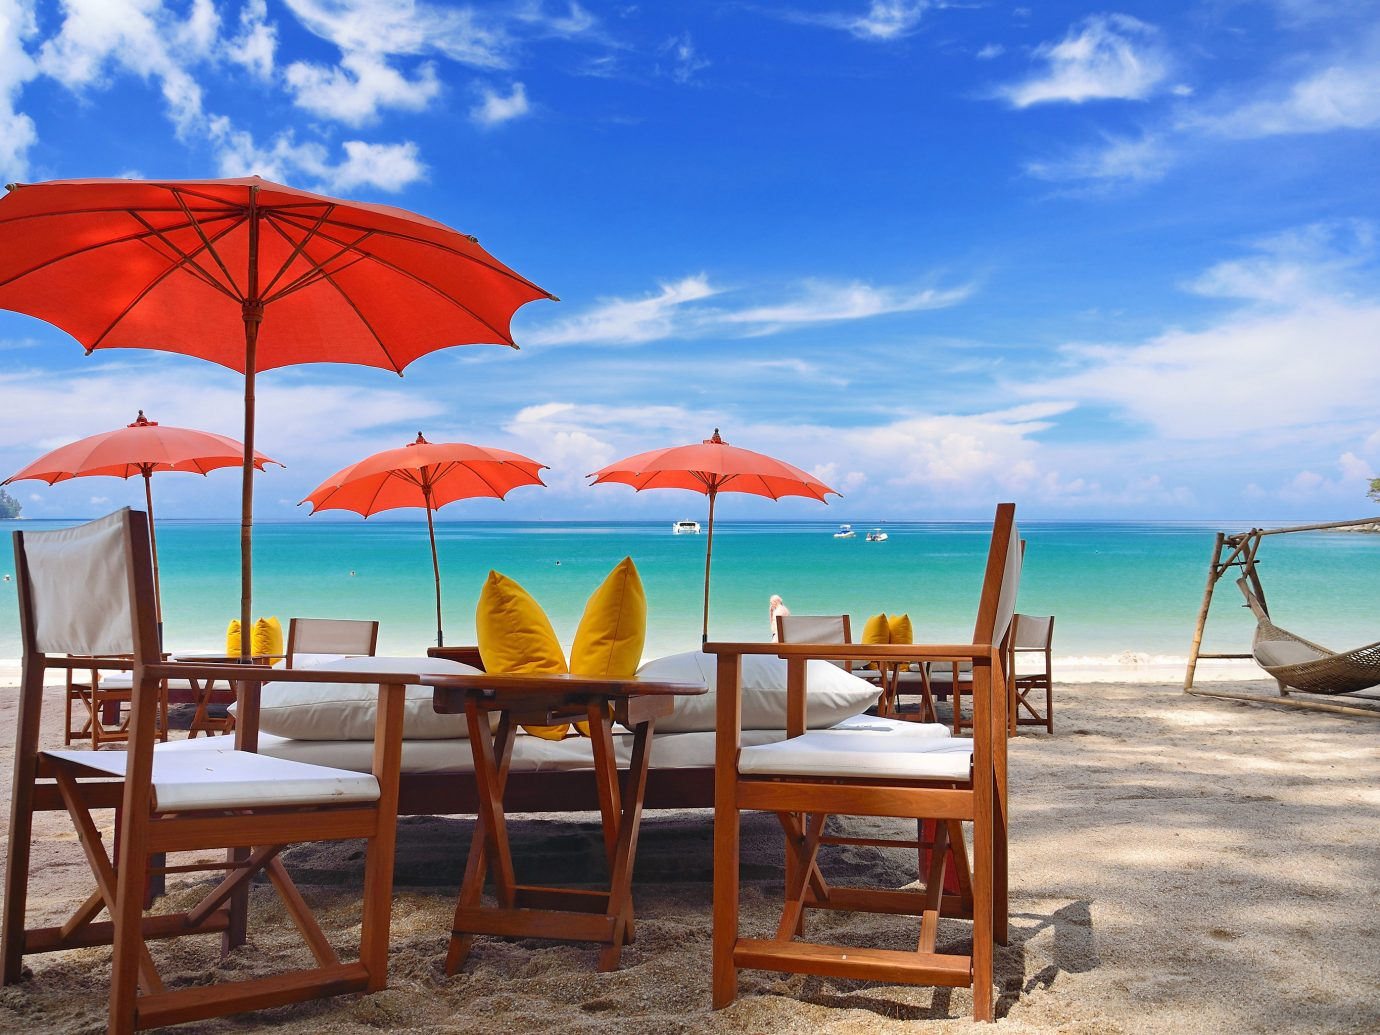 Beach Beachfront Hotels Lounge Ocean Outdoors Romance Tropical accessory sky umbrella chair leisure outdoor Nature vacation rain caribbean Sea Resort shore estate day several